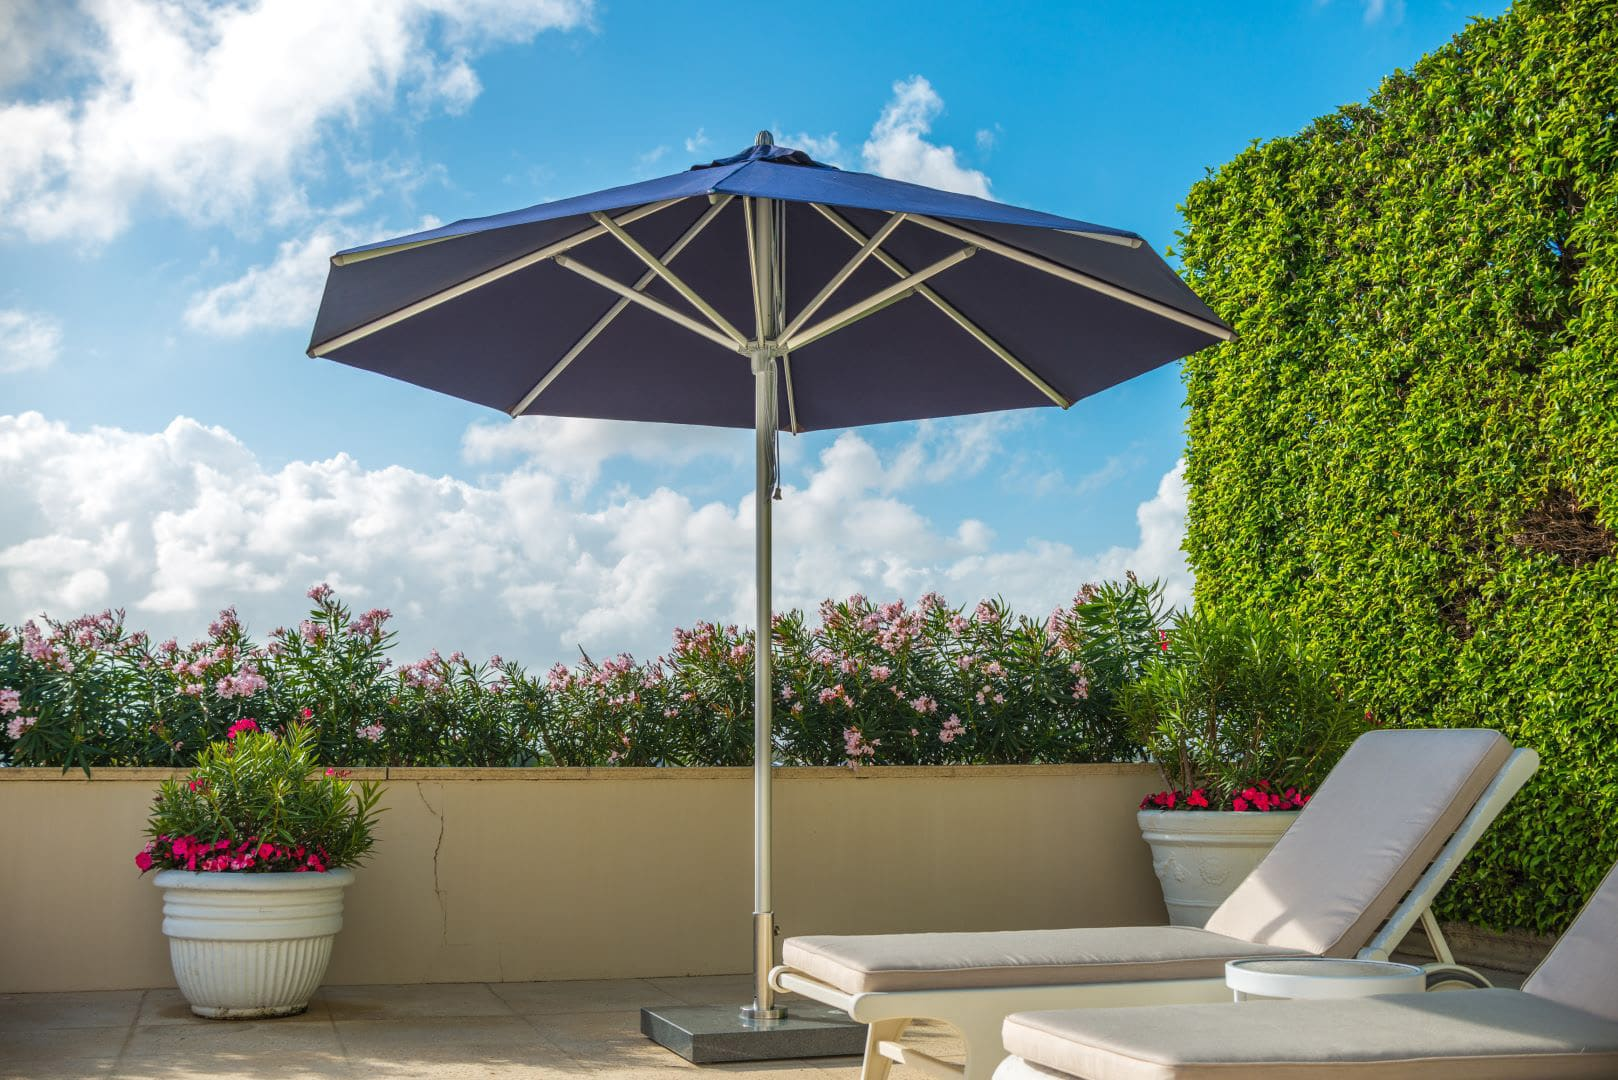 <p>Parasols Pacific – Round Aluminium Centre Pole – Hotel Outdoor Restaurant Terrace Shade Cover</p> <p></p> <p>Premium, stylish, and beautiful aluminium centre pole commercial parasol offering the ideal shade solution providing comfort and protection from the environmental conditions be it blazing hot sunshine or pouring rain.</p> <p></p> <p>Suitable for both commercial and residential settings enabling customers to experience a continental atmosphere and unrivalled luxury</p> <p></p> <p>Impressive & versatile and designed to enhance any outdoor area be it an outdoor restaurant terrace or hotel outdoor pool area</p>